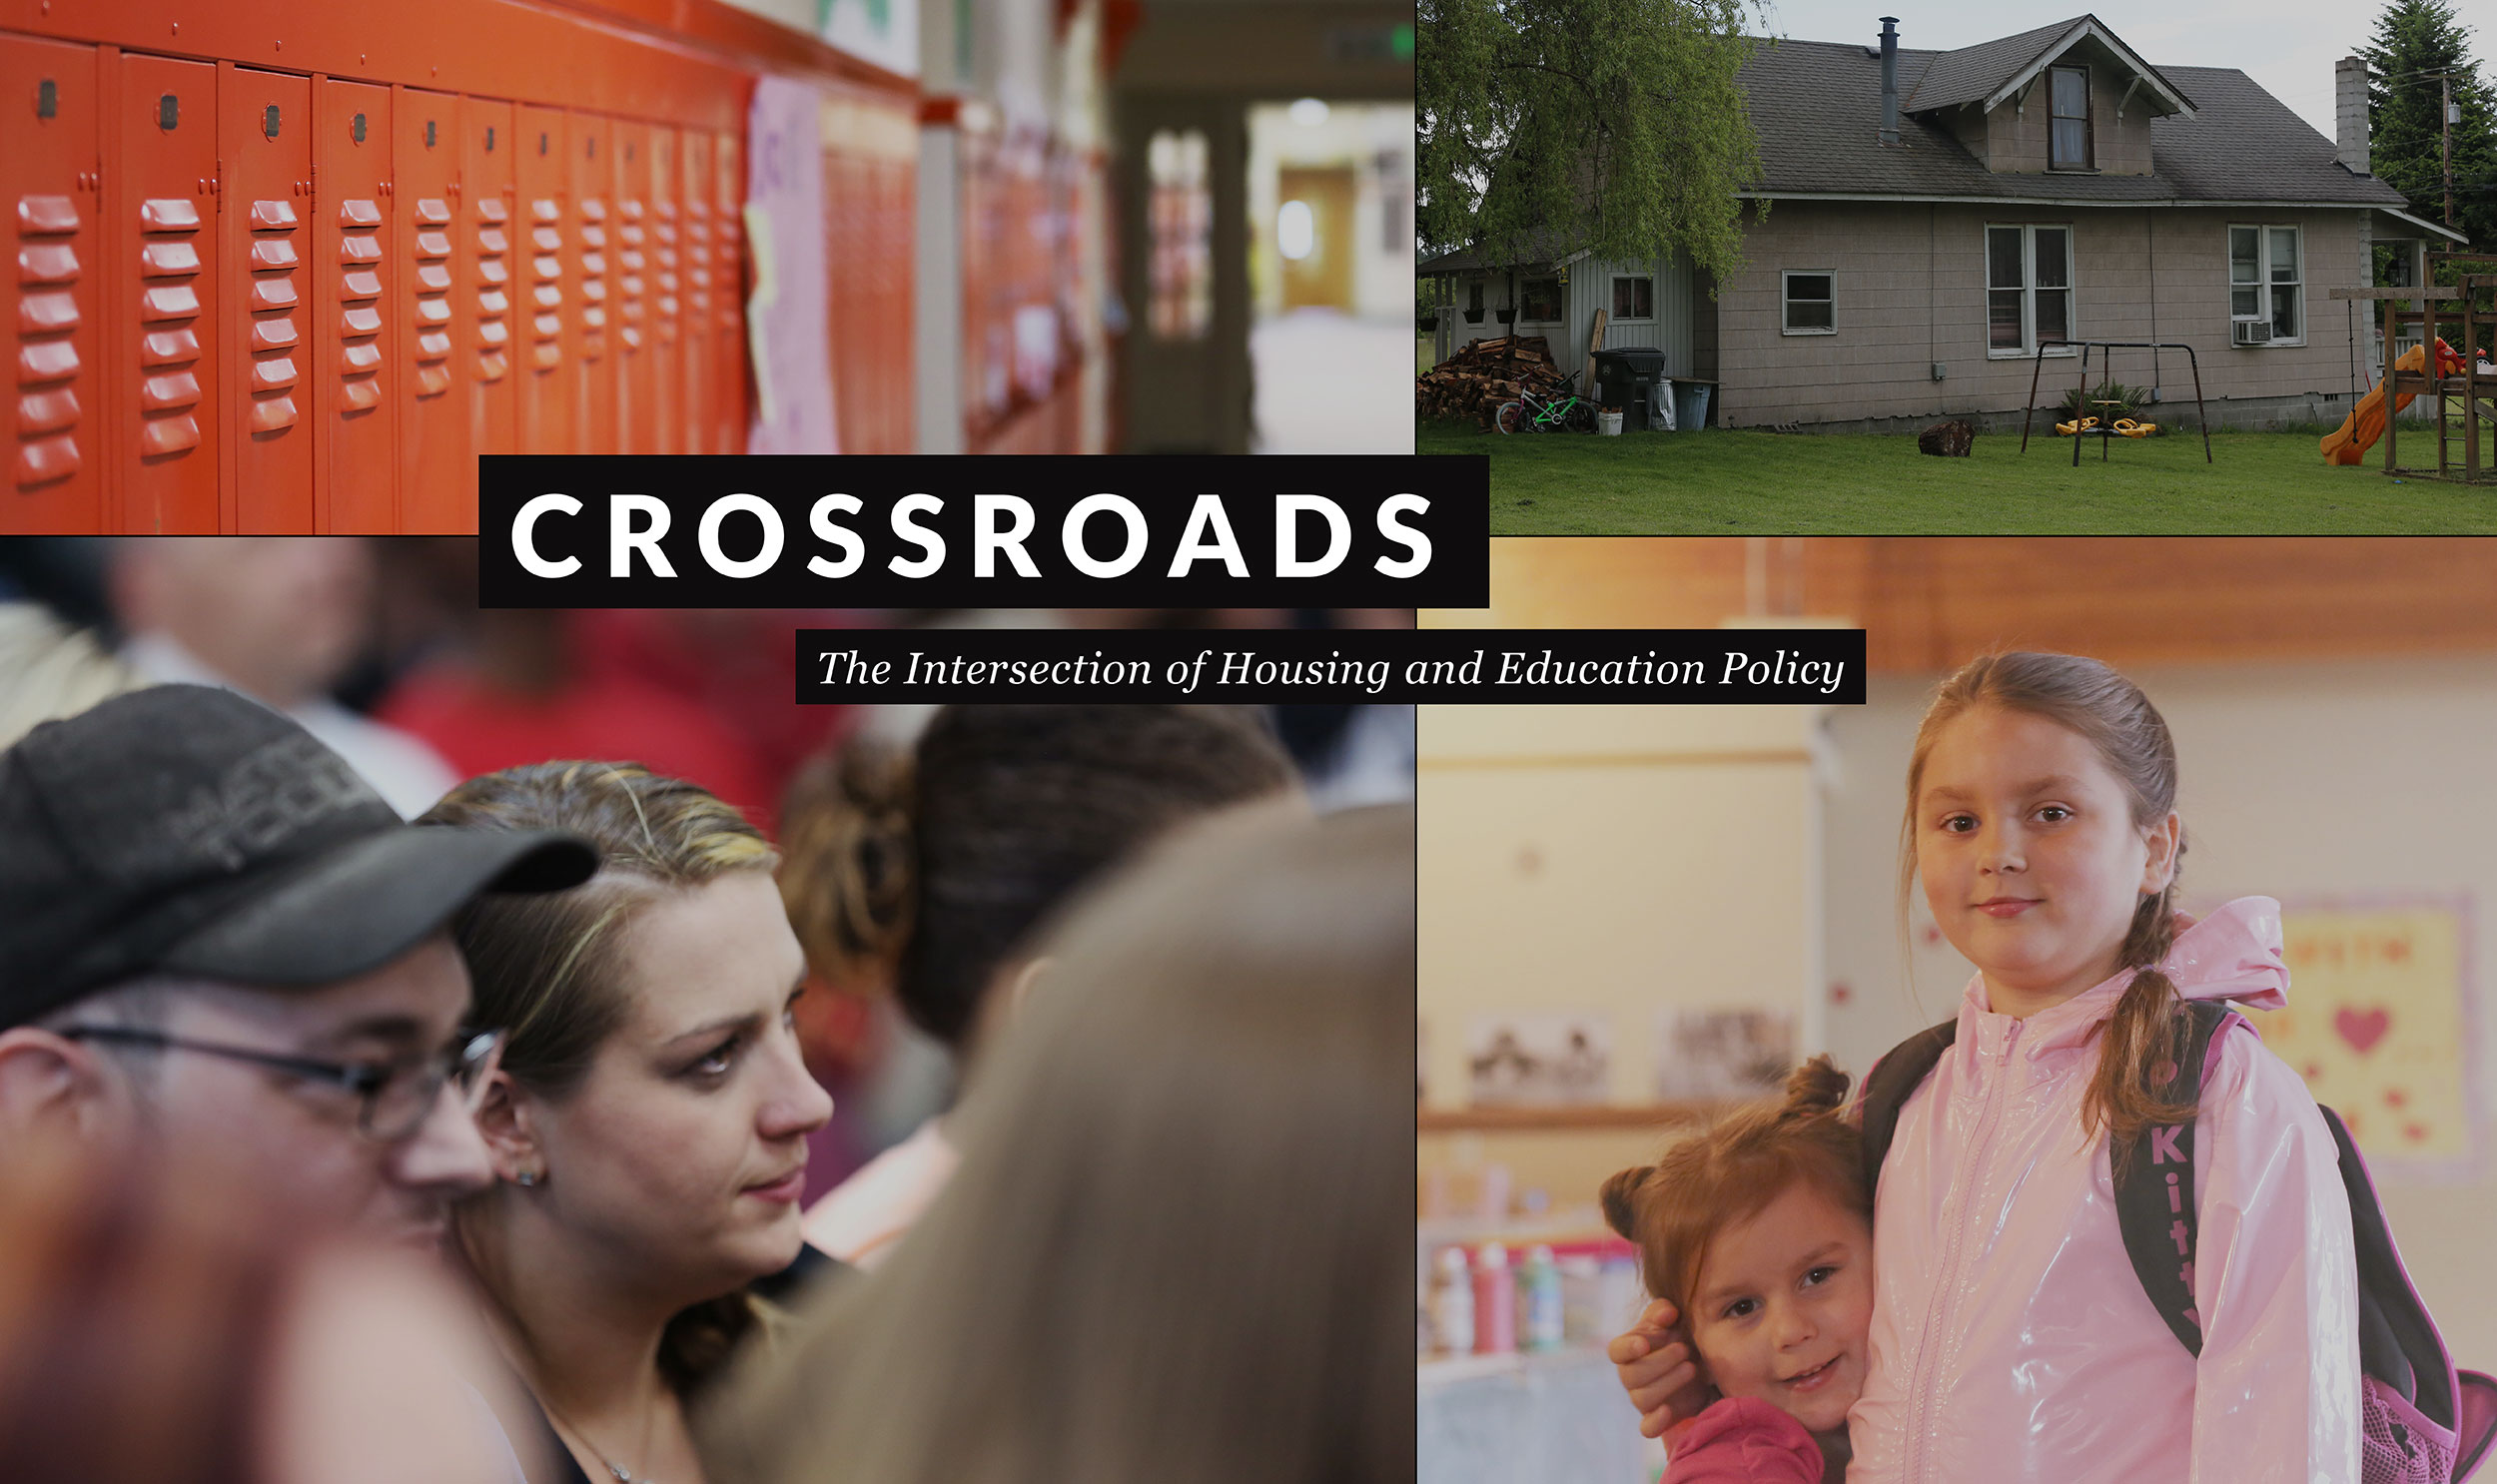 Crossroads: The Intersection of Housing and Education Policy